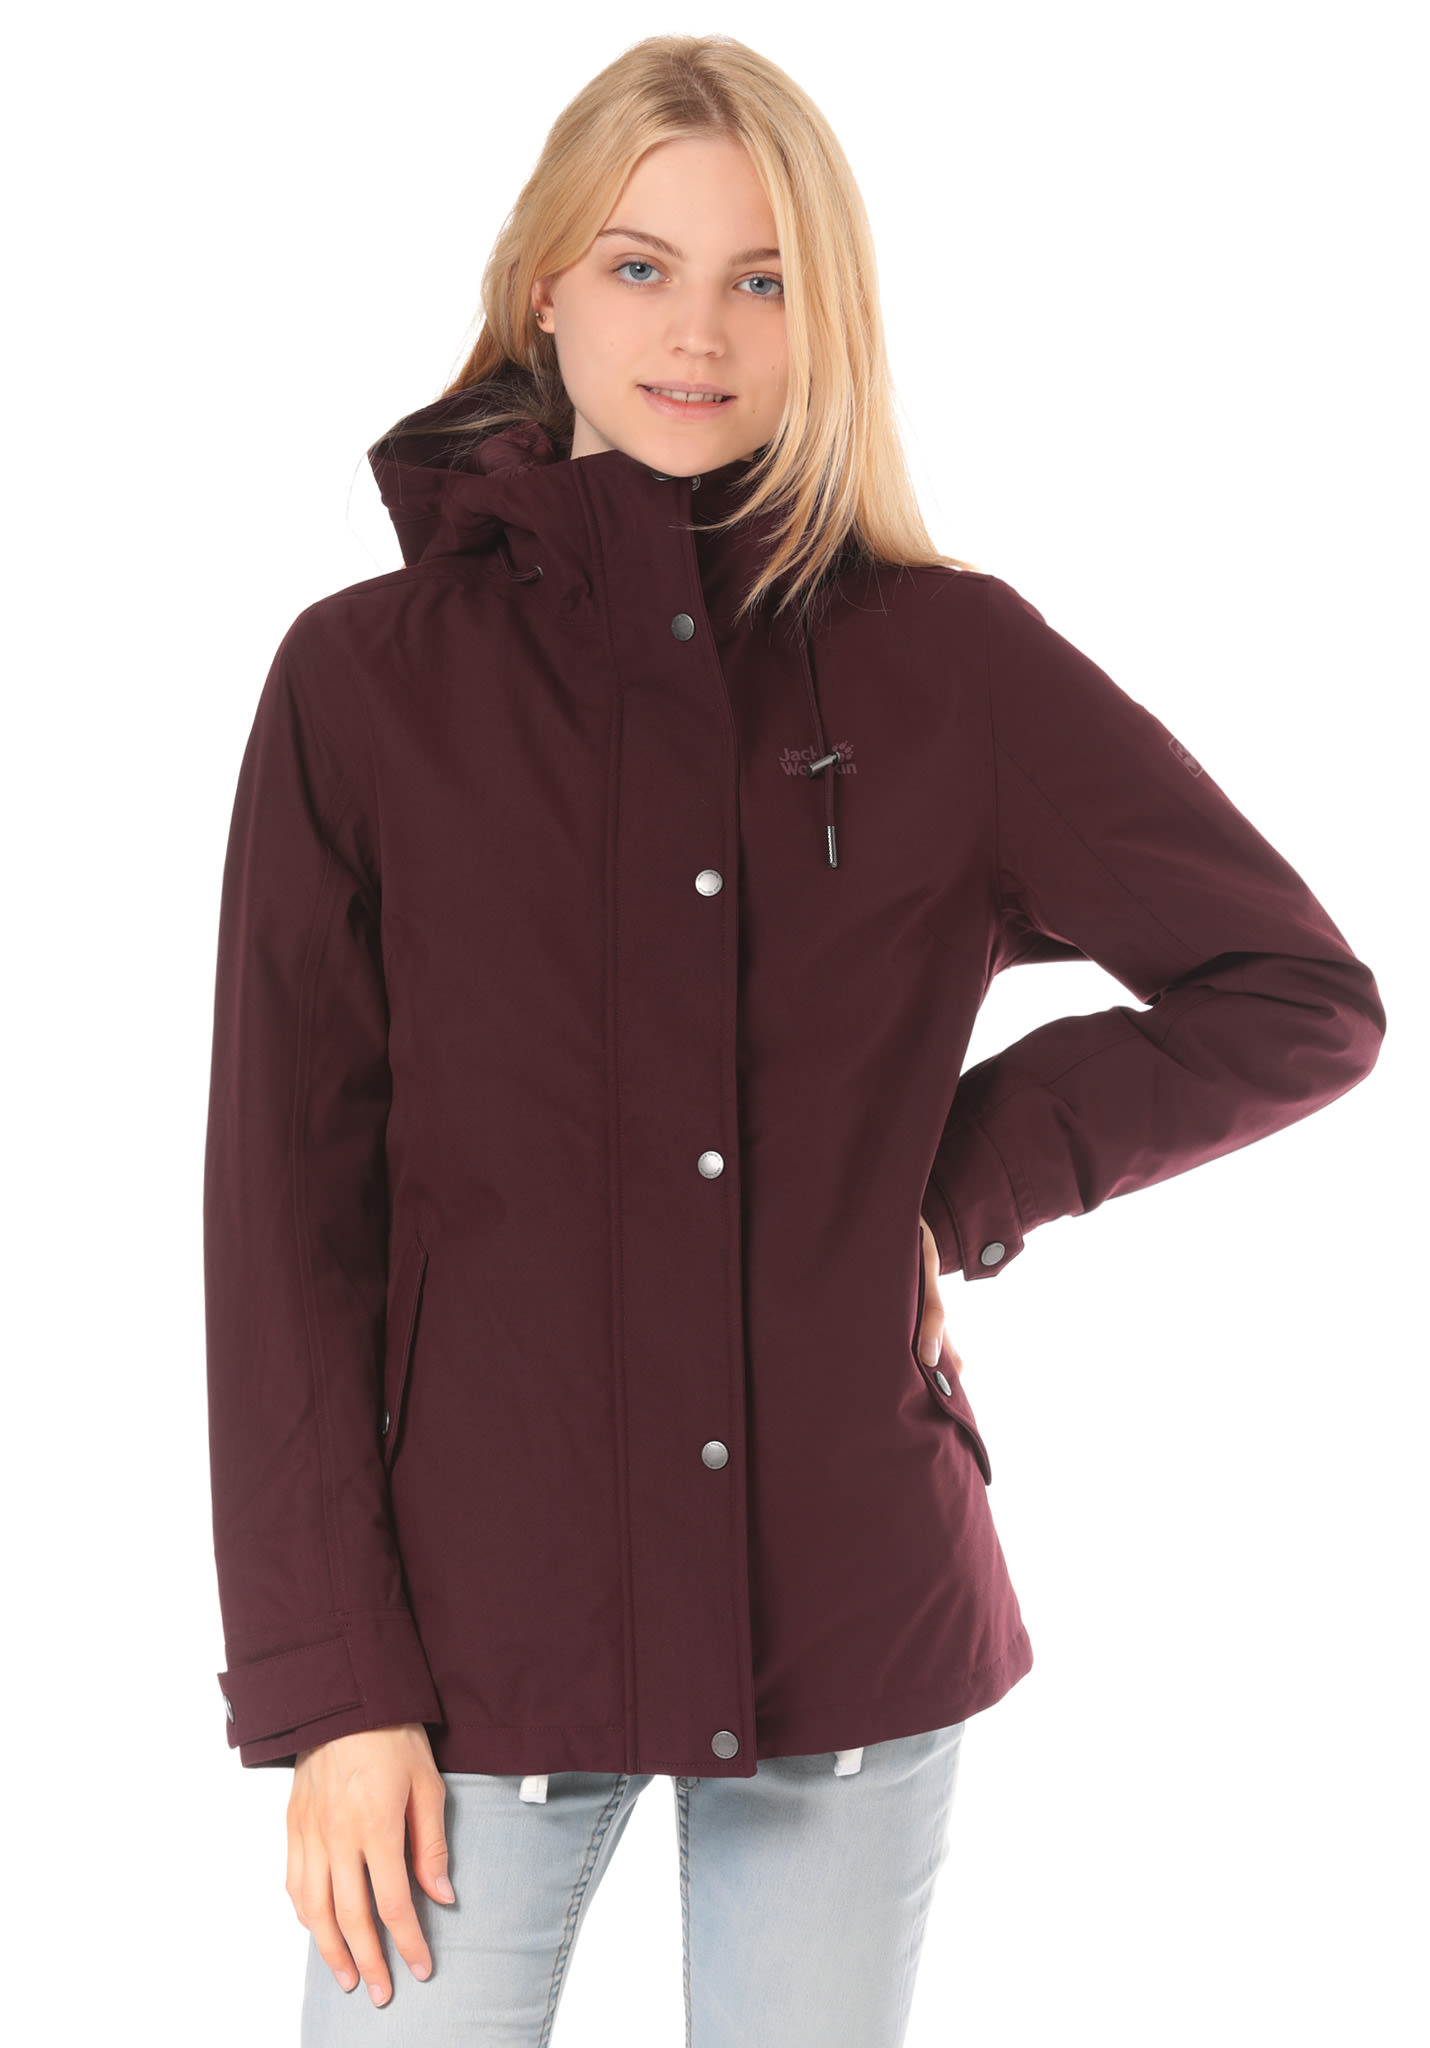 1568be078cce Jack Wolfskin Mora - Outdoorjacke für Damen - Rot - Planet Sports